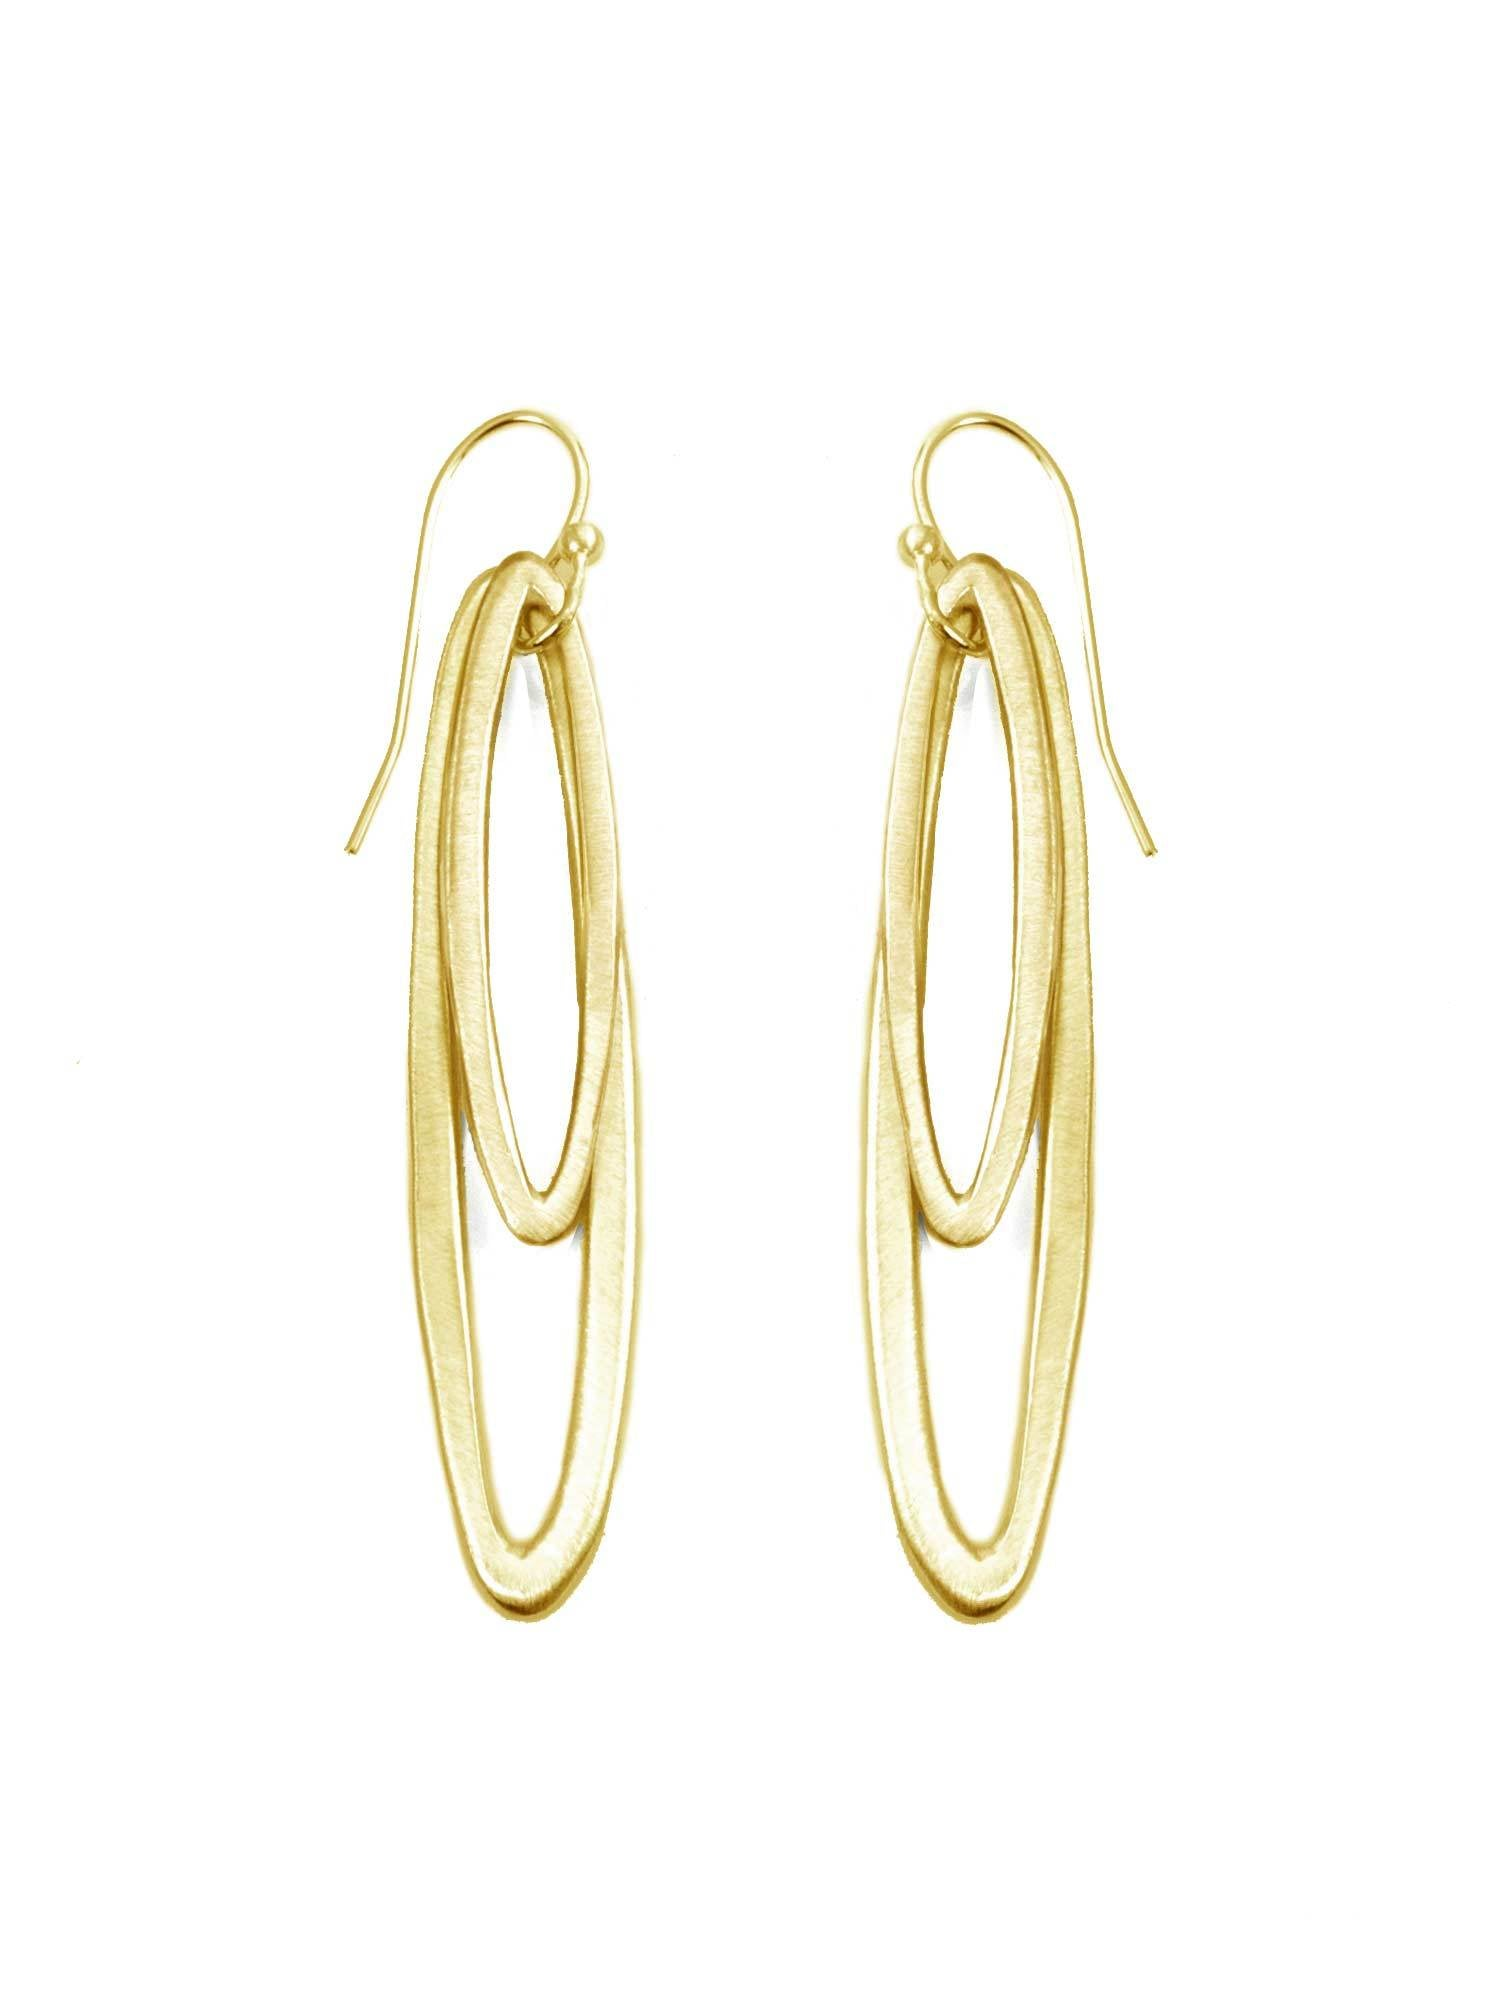 Small and Medium Vermeil Ovals Earrings